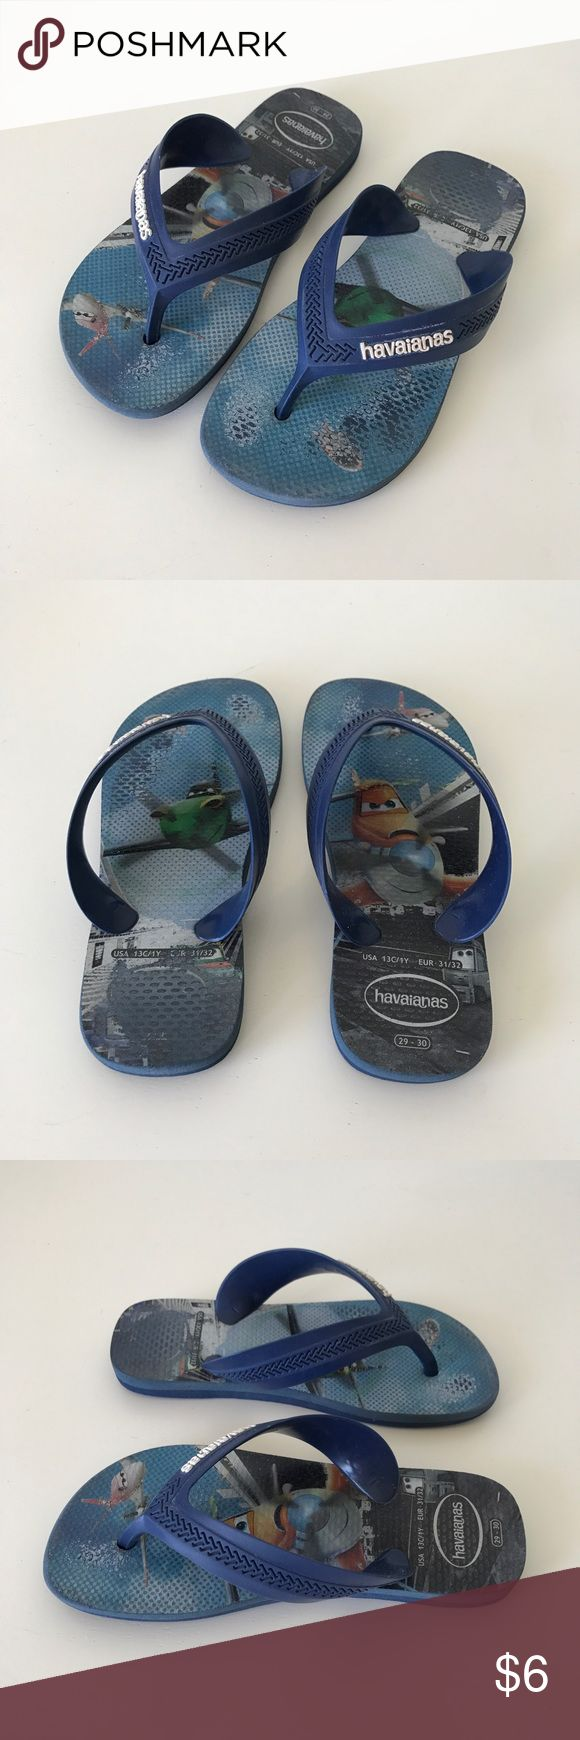 Kids Havaianas Planes Movie Theme Size 29-30 Kids Pre-owned kids Havaianas in good condition. Havaianas Shoes Sandals & Flip Flops